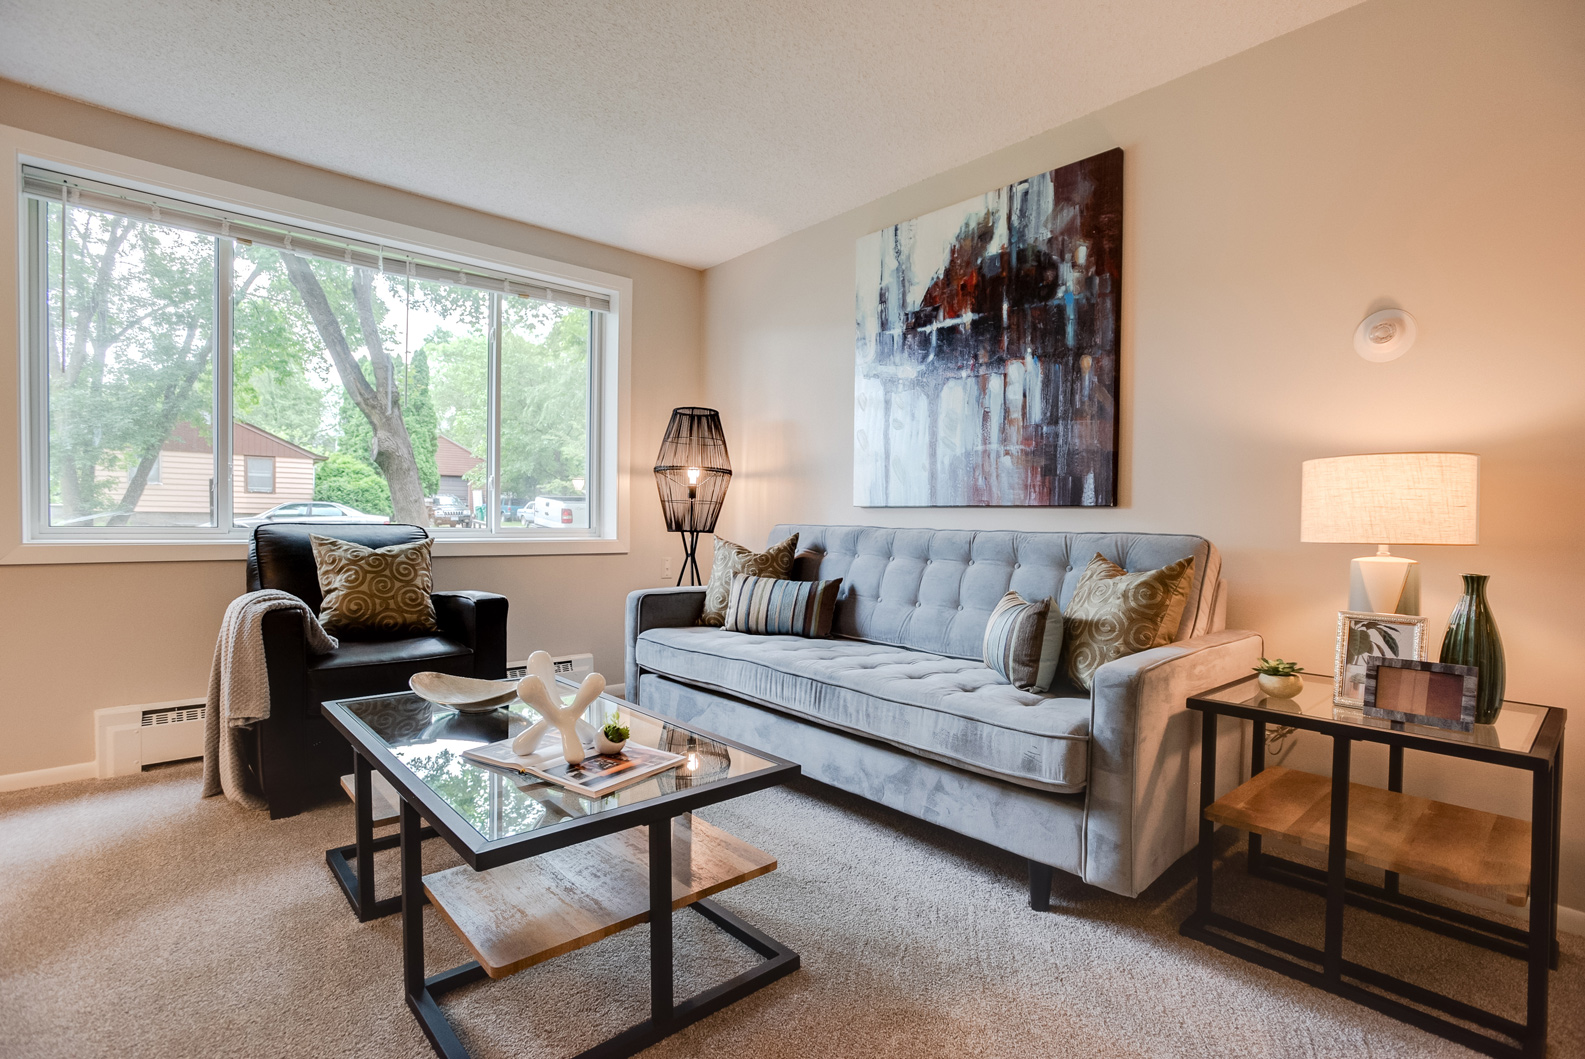 Garden View Staging for Apartments, Staging Small Spaces in Minneapolis, #1328 Idaho ~ Staged by Lionheart